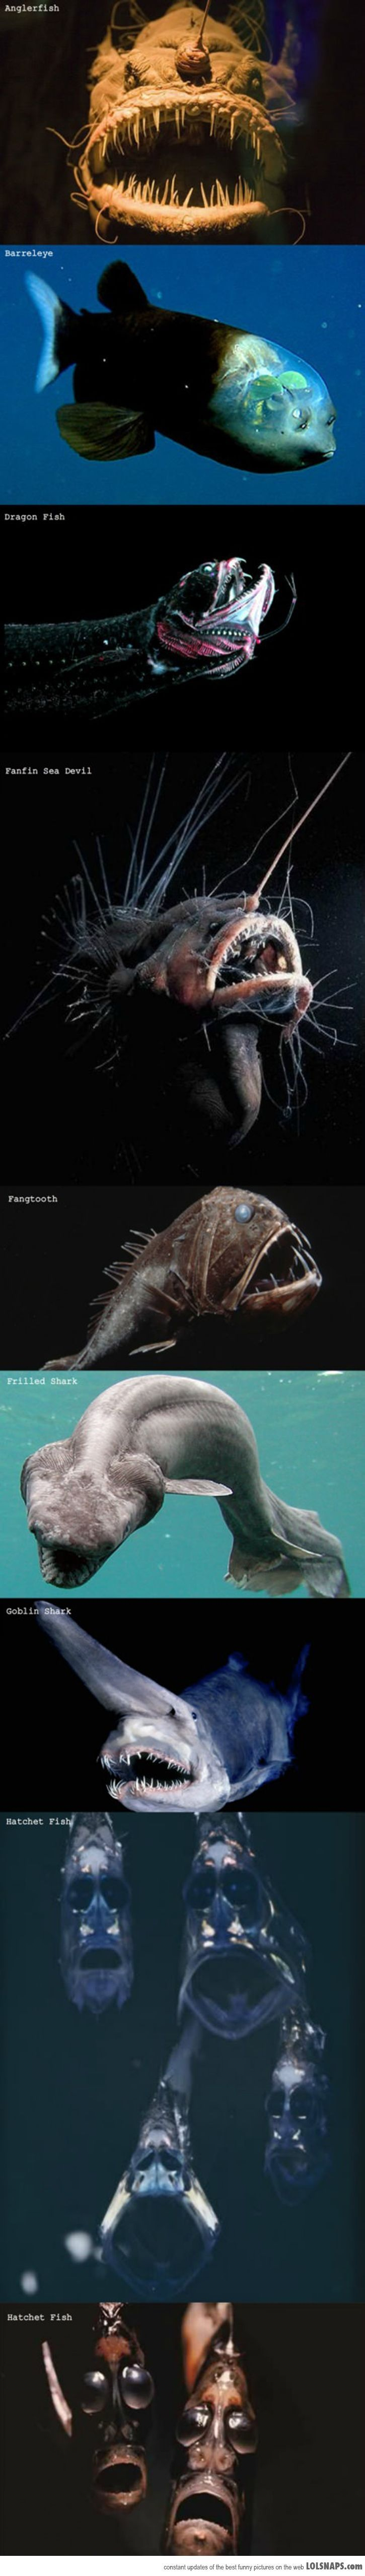 Creepy Creatures Of The Mariana Trench. I wonder what else is hiding there in the depths?